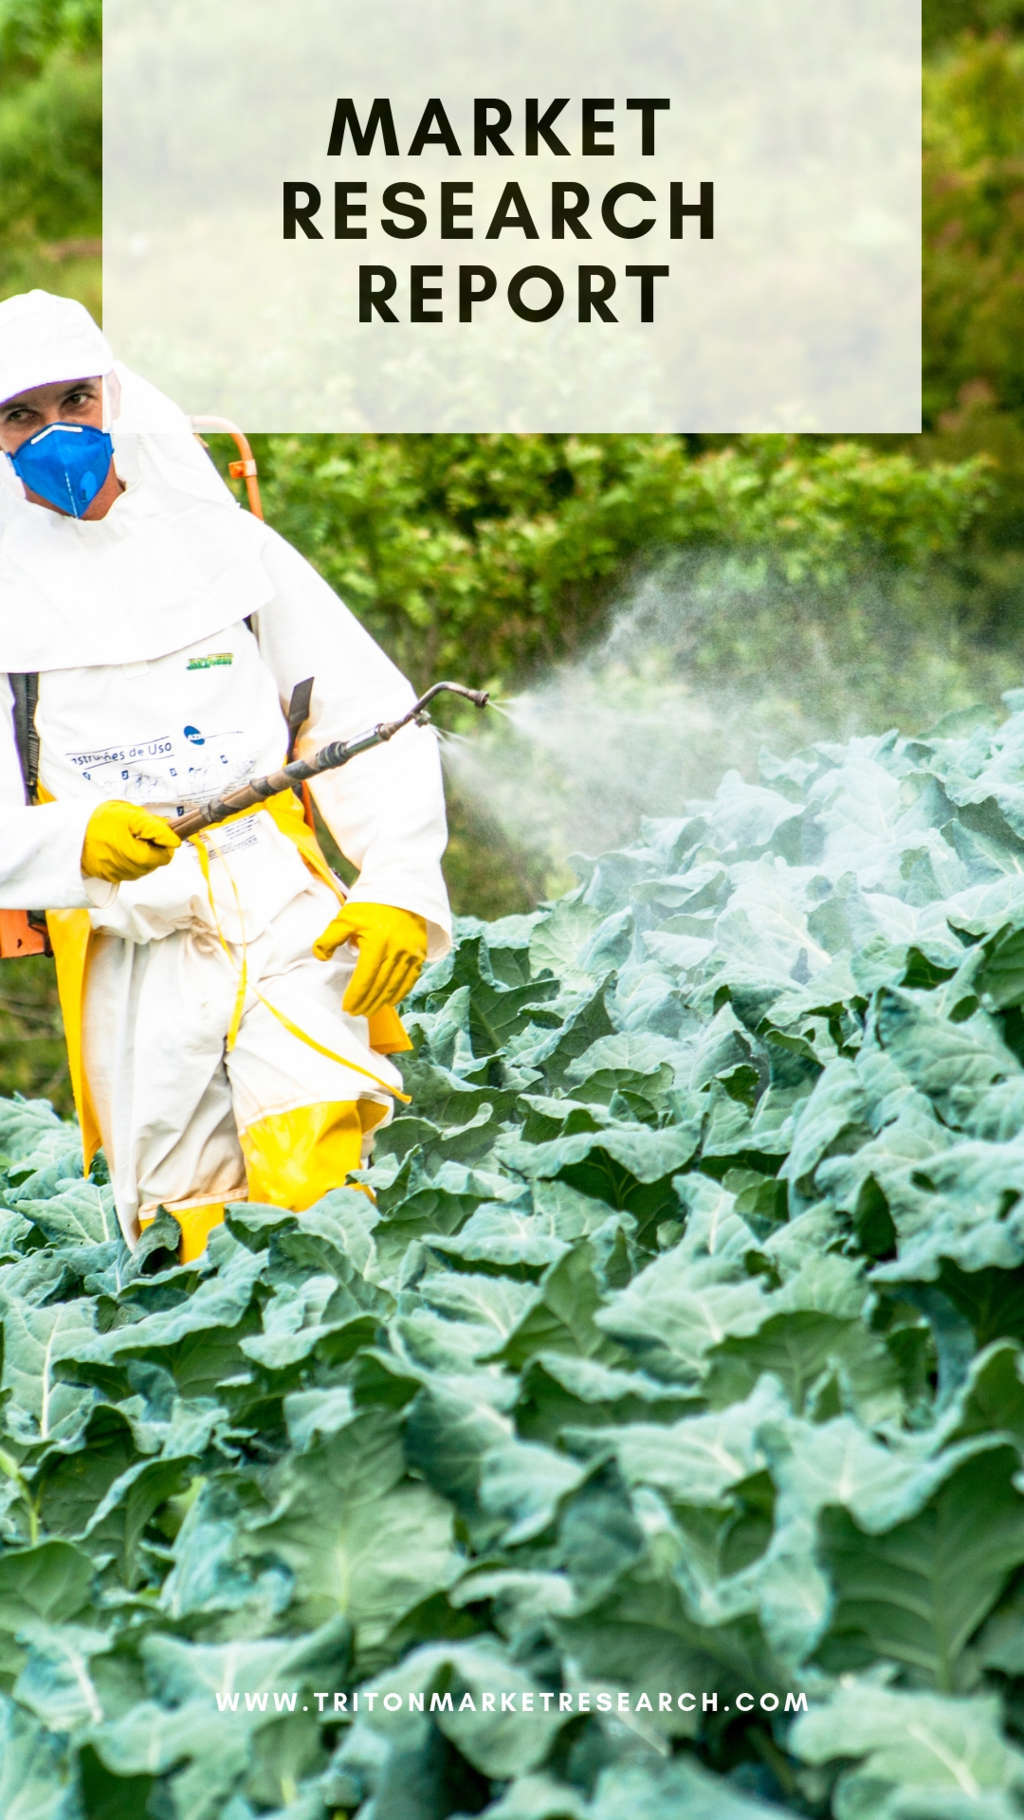 GLOBAL BIOPESTICIDES MARKET 2019-2027